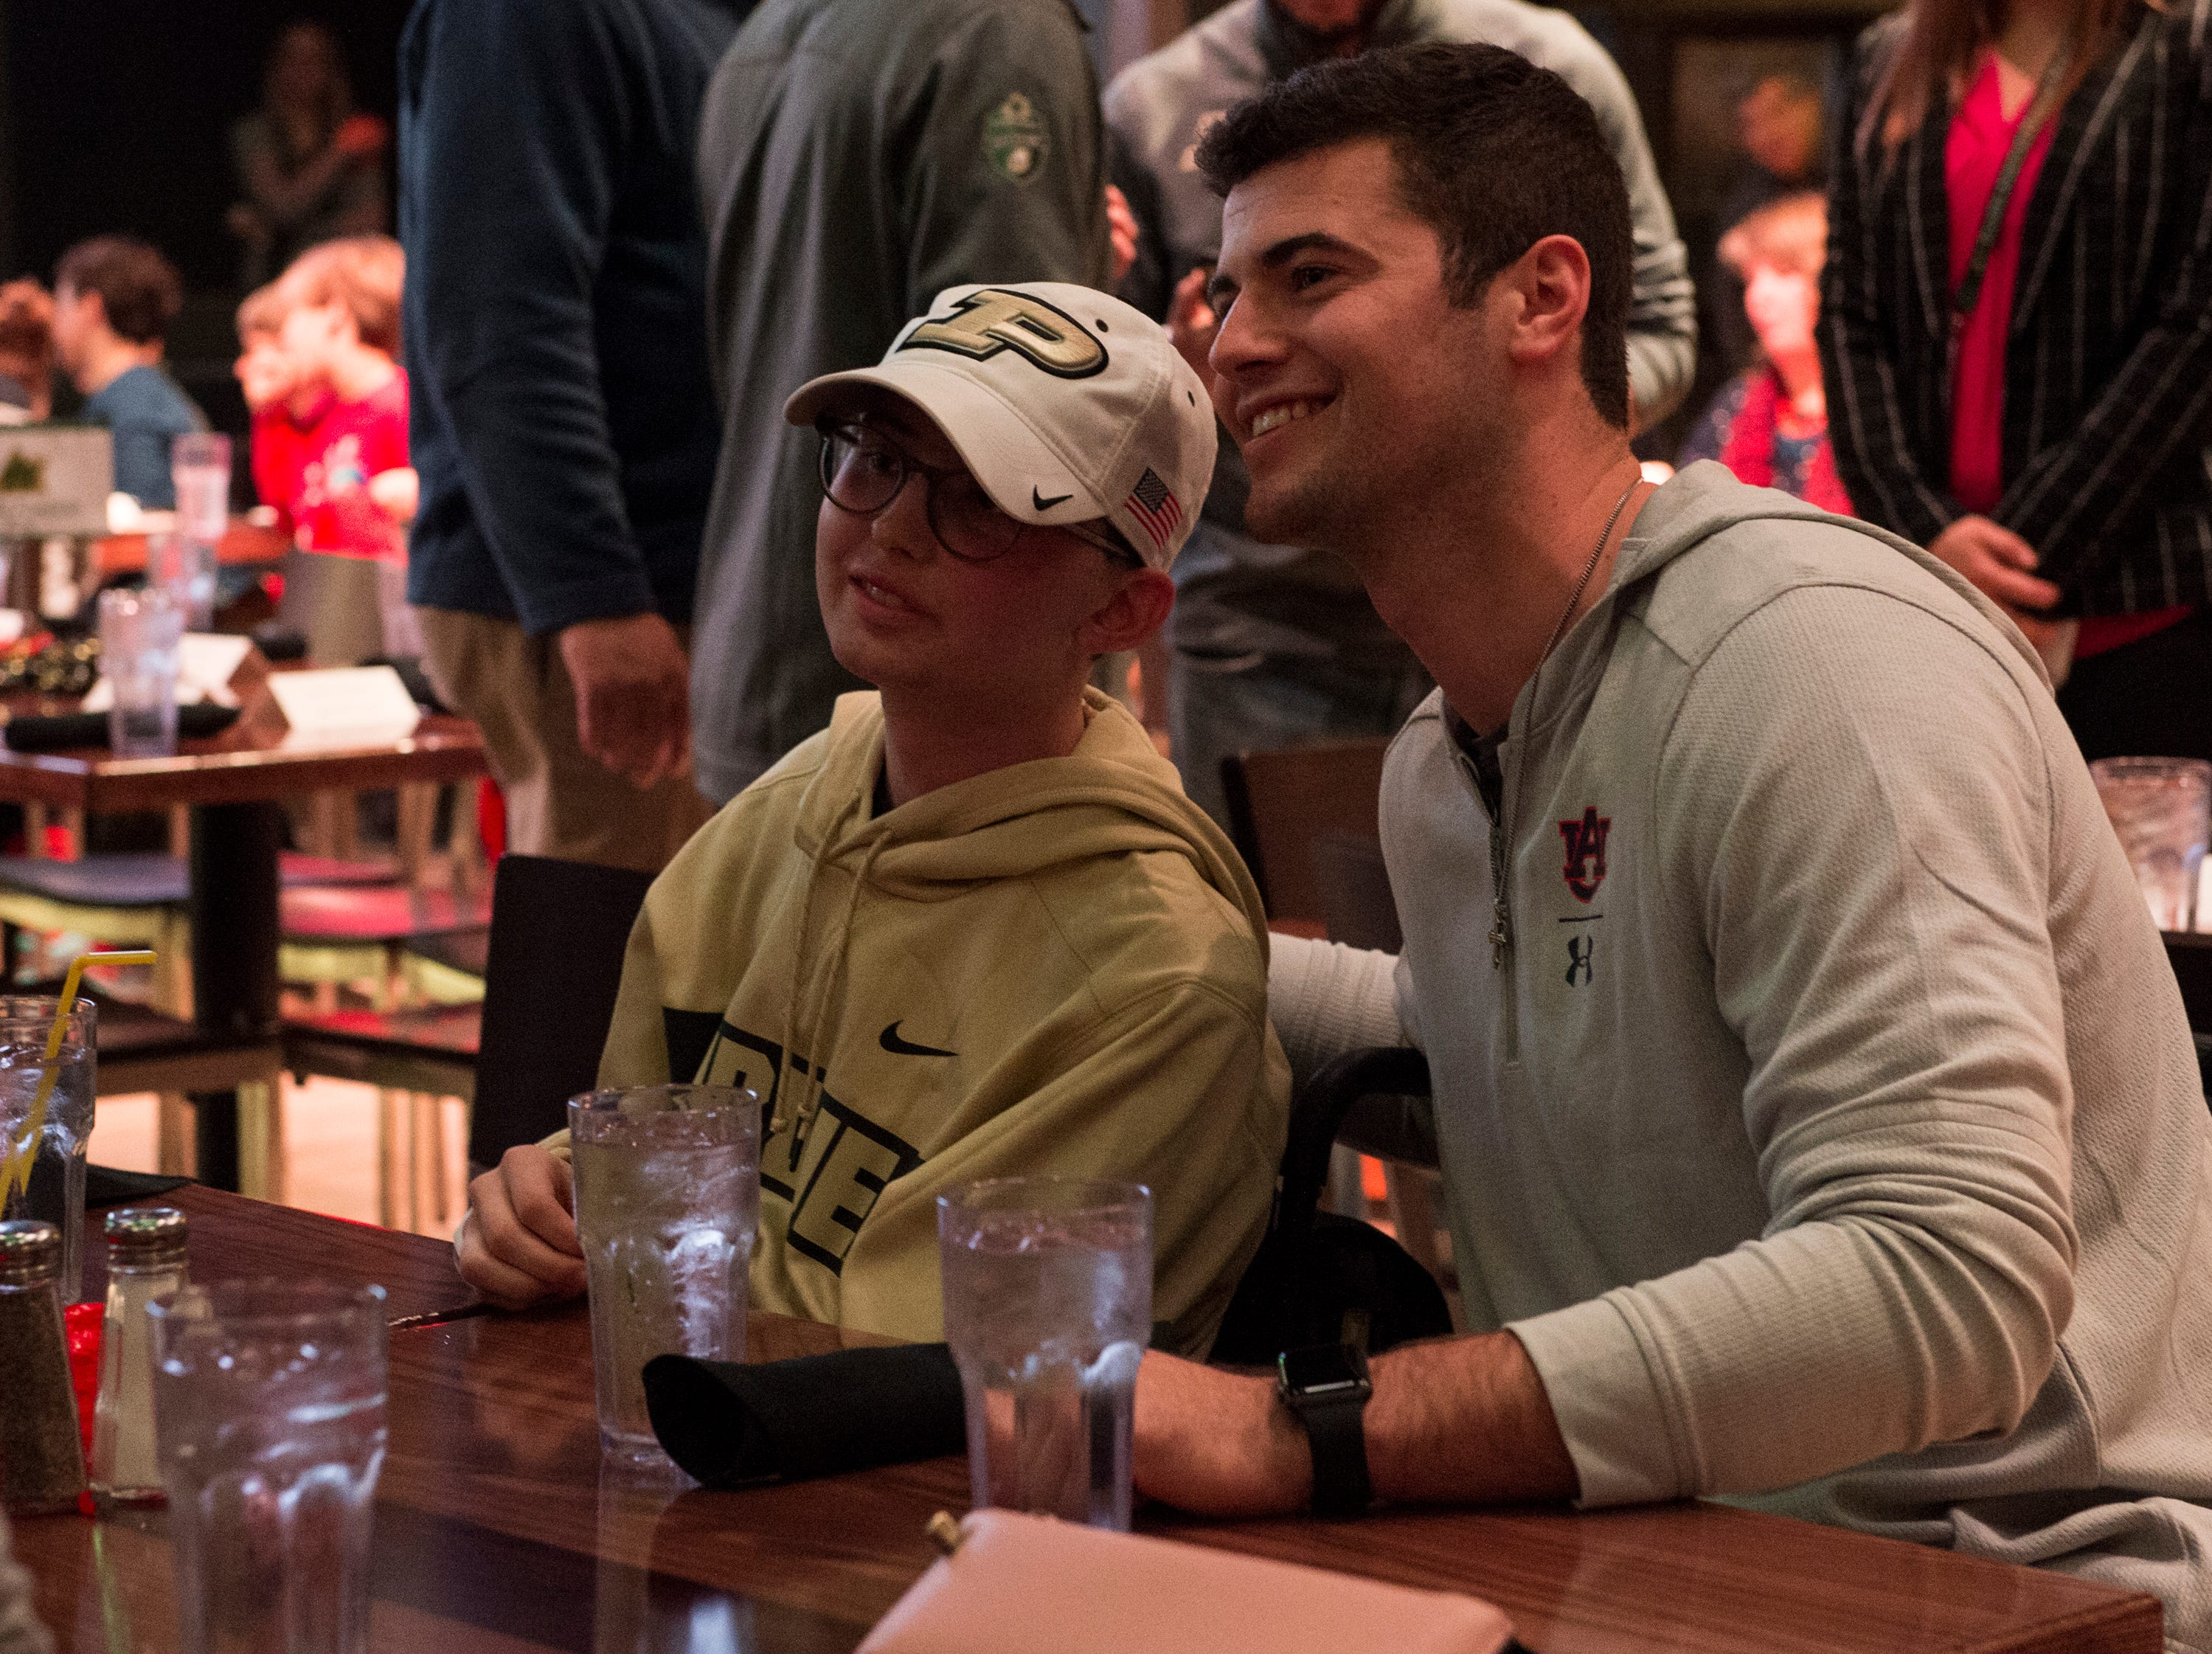 Auburn quarterback Jarrett Stidham (8) poses for a picture with Tyler Trent at Wild Horse Saloon in Nashville, Ten., on Wednesday, Dec. 26, 2018. Trent is a former Purdue student and Boilermaker fan who is suffering from a rare form of bone cancer. Auburn takes on Purdue in the Music City Bowl Friday.